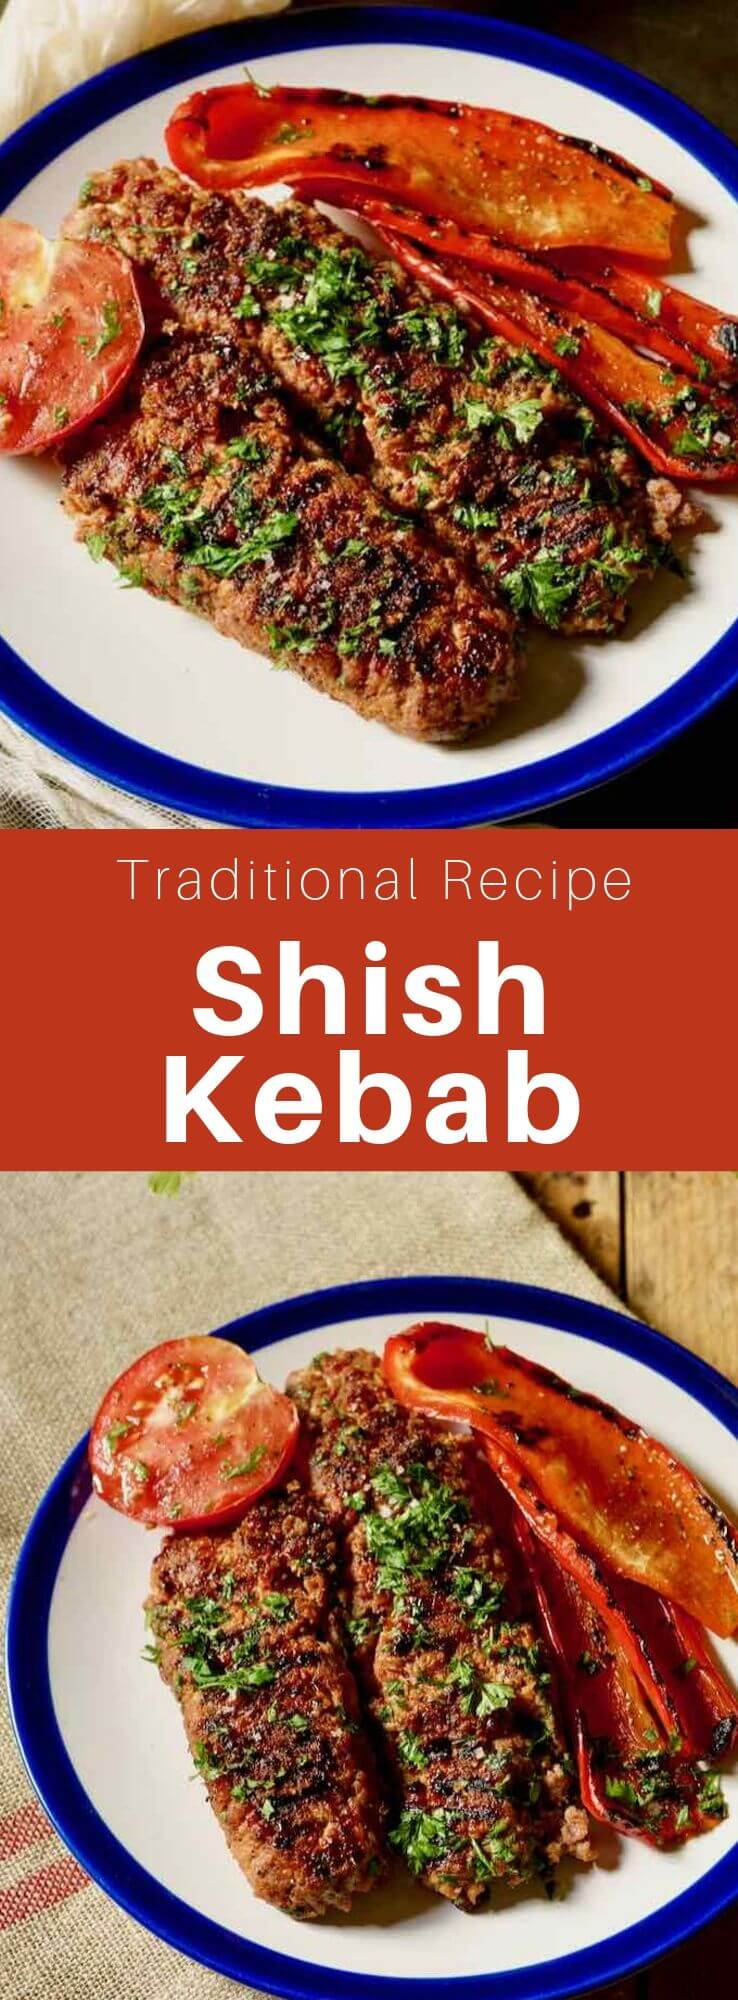 Shish kebab is a popular Middle Eastern dish made from grilled skewered lamb and/or beef meat. #MiddleEasternCuisine #MiddleEasternRecipe #WorldCuisine #196flavors